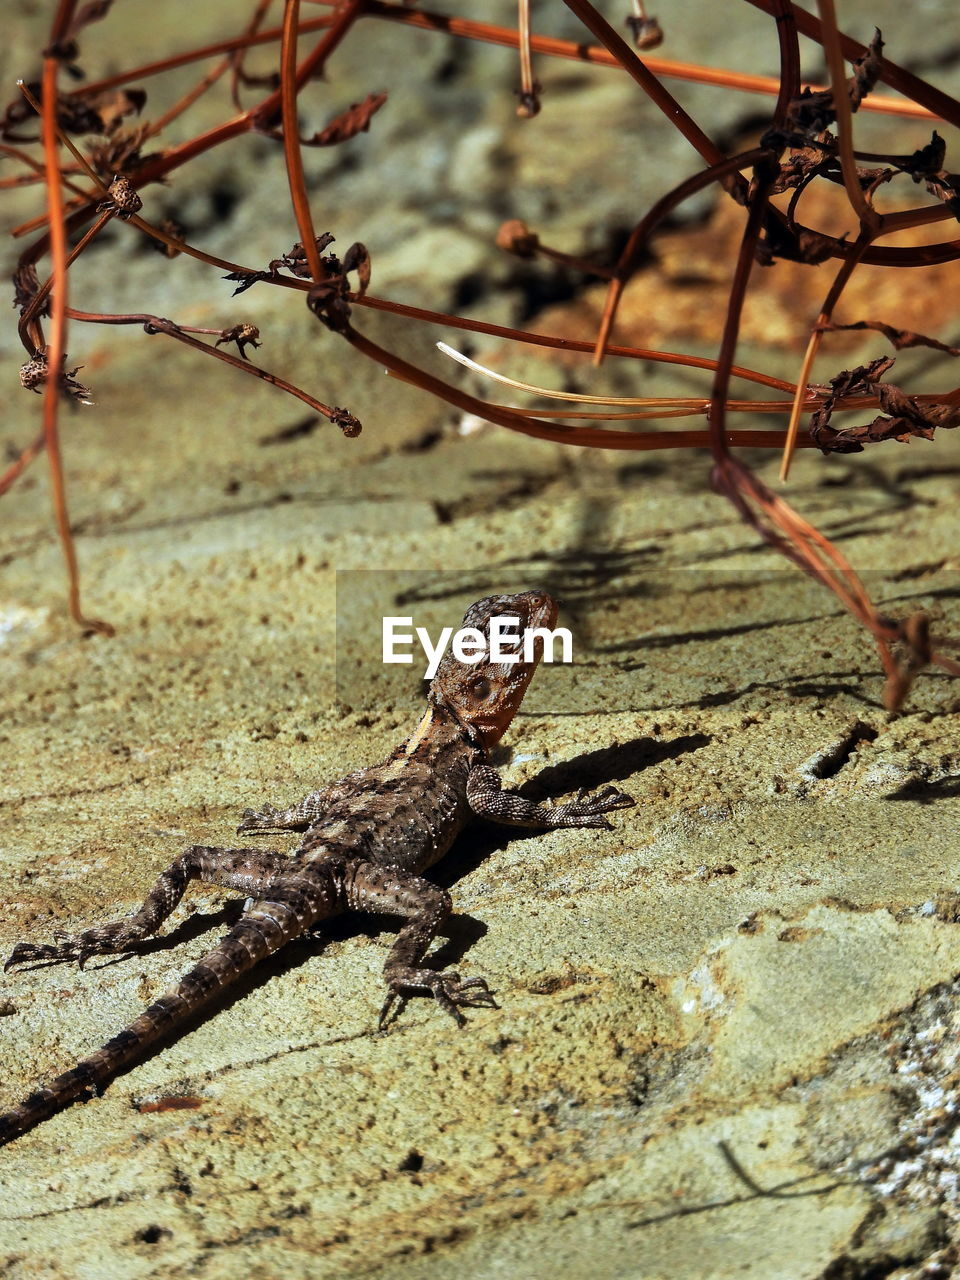 animal, animal themes, animal wildlife, animals in the wild, one animal, vertebrate, reptile, lizard, nature, no people, day, focus on foreground, tree, branch, plant, outdoors, sunlight, close-up, rock, selective focus